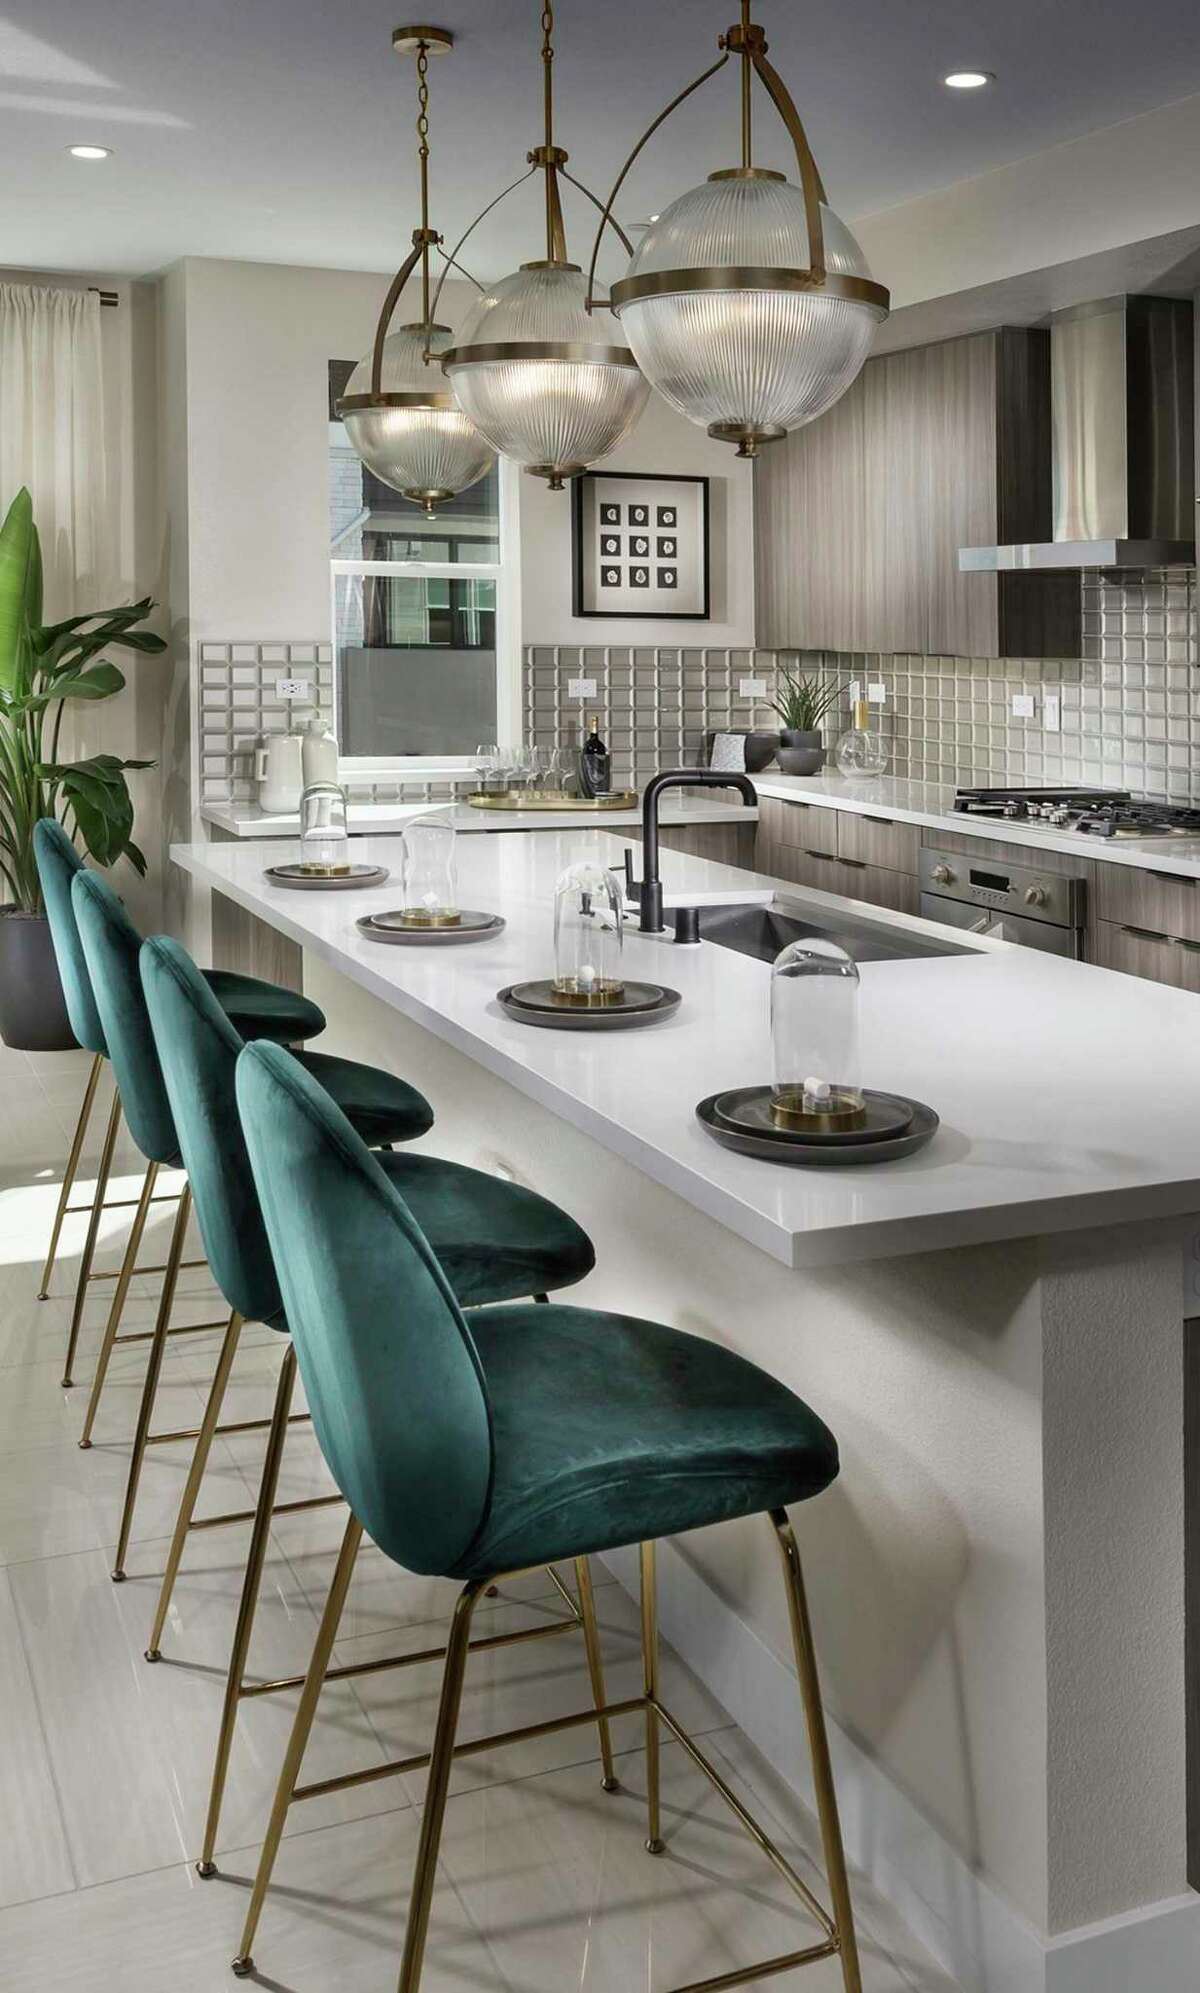 The open kitchen revolves around a bar island in this floor plan available in the